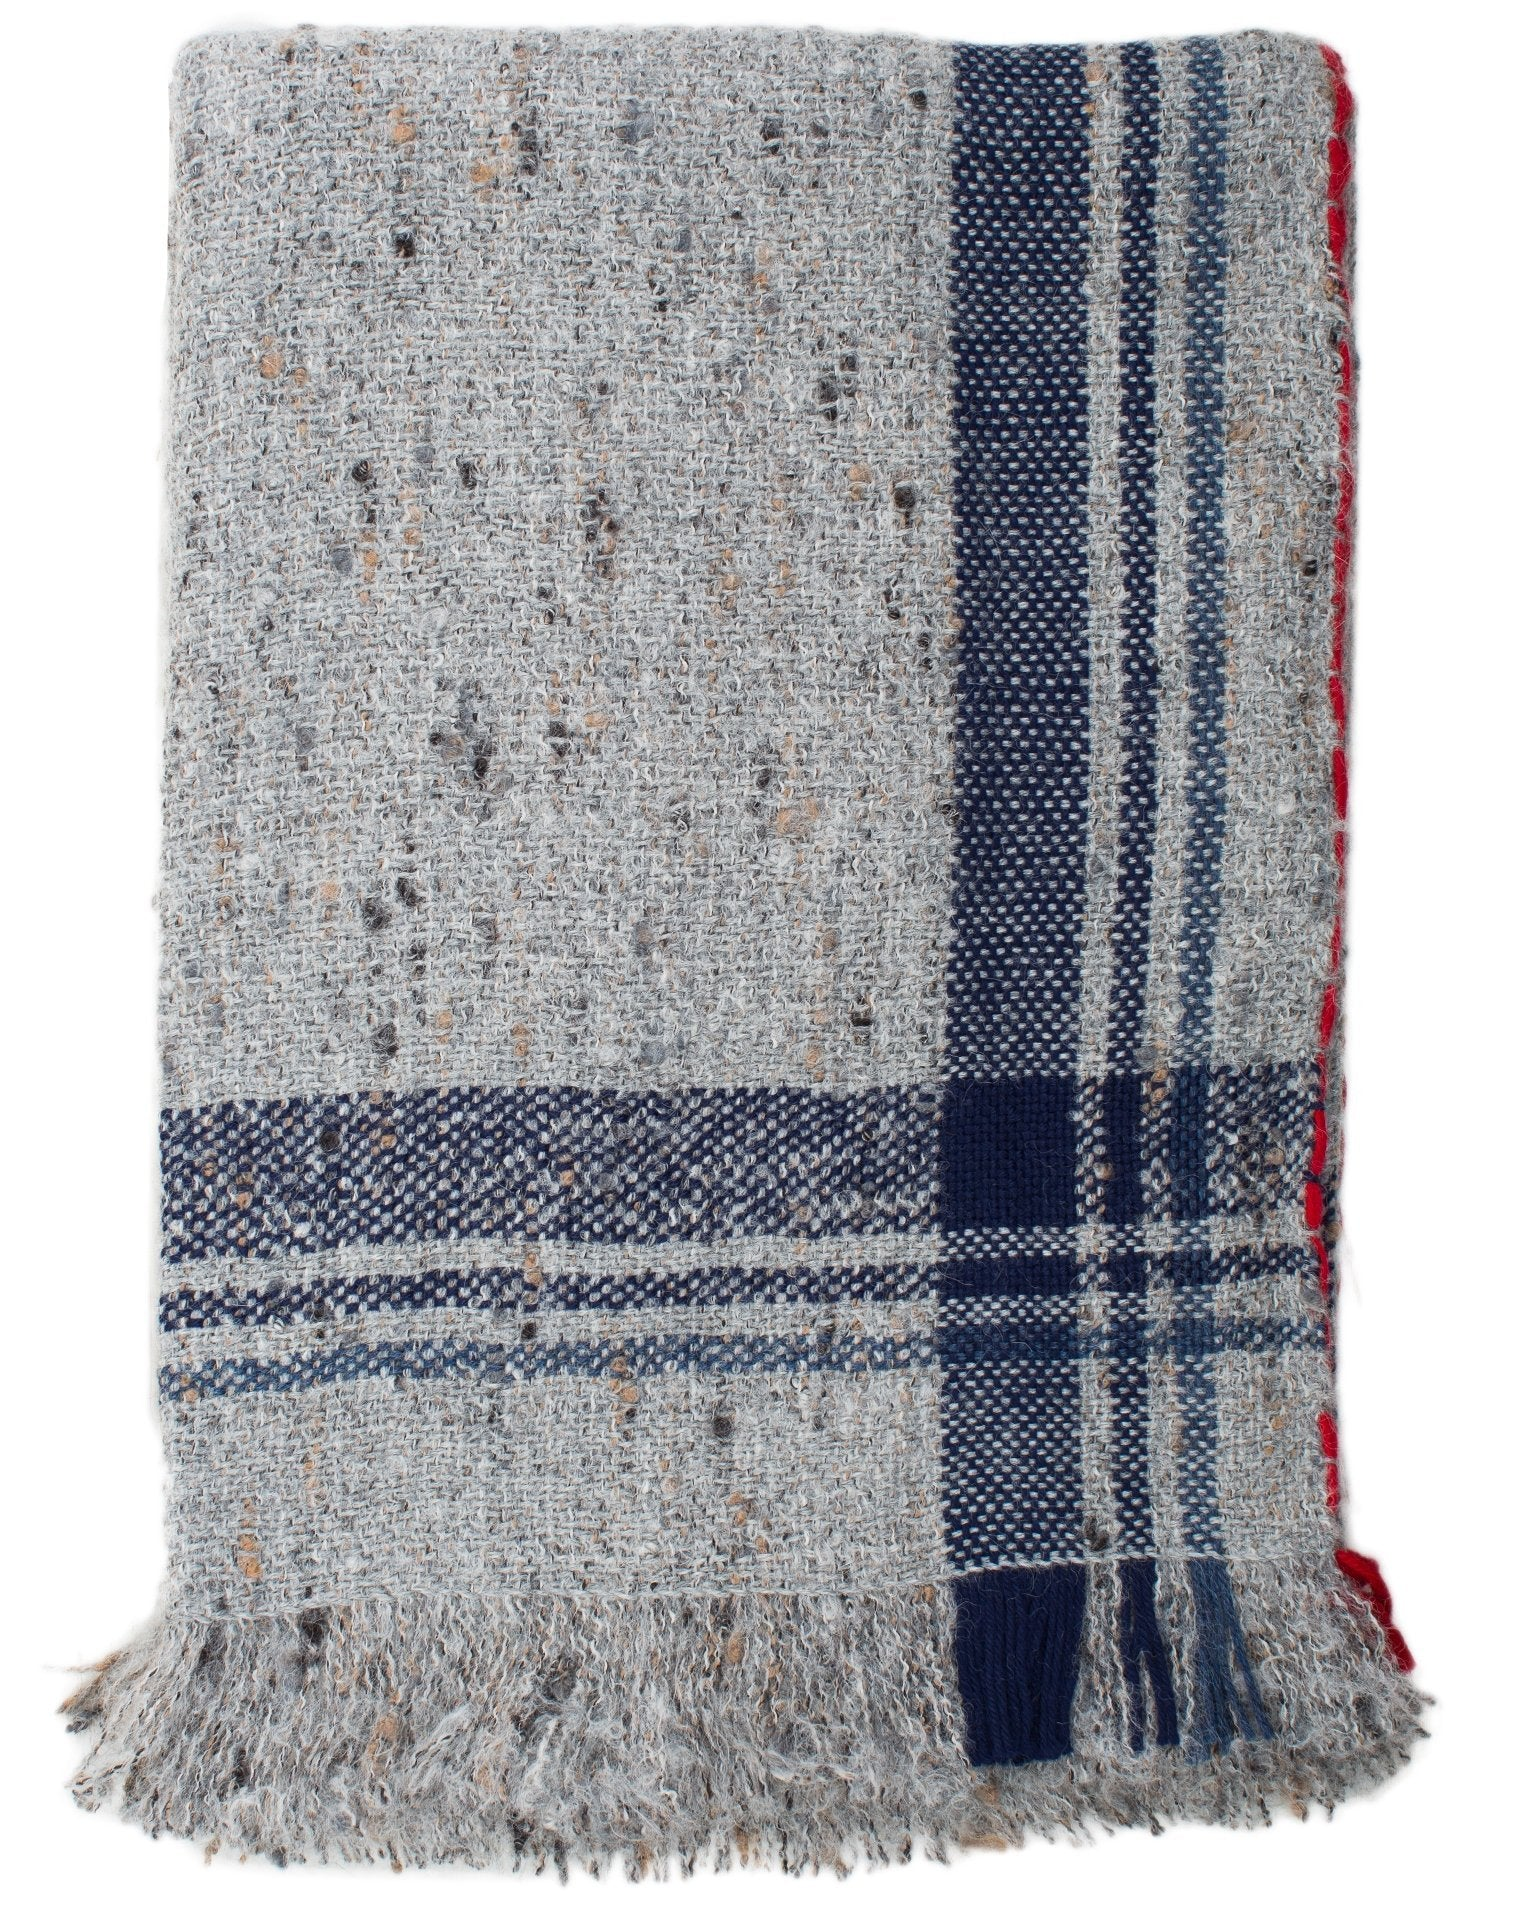 Mois Mont Home Light Grey / O/S Tipped Blanket